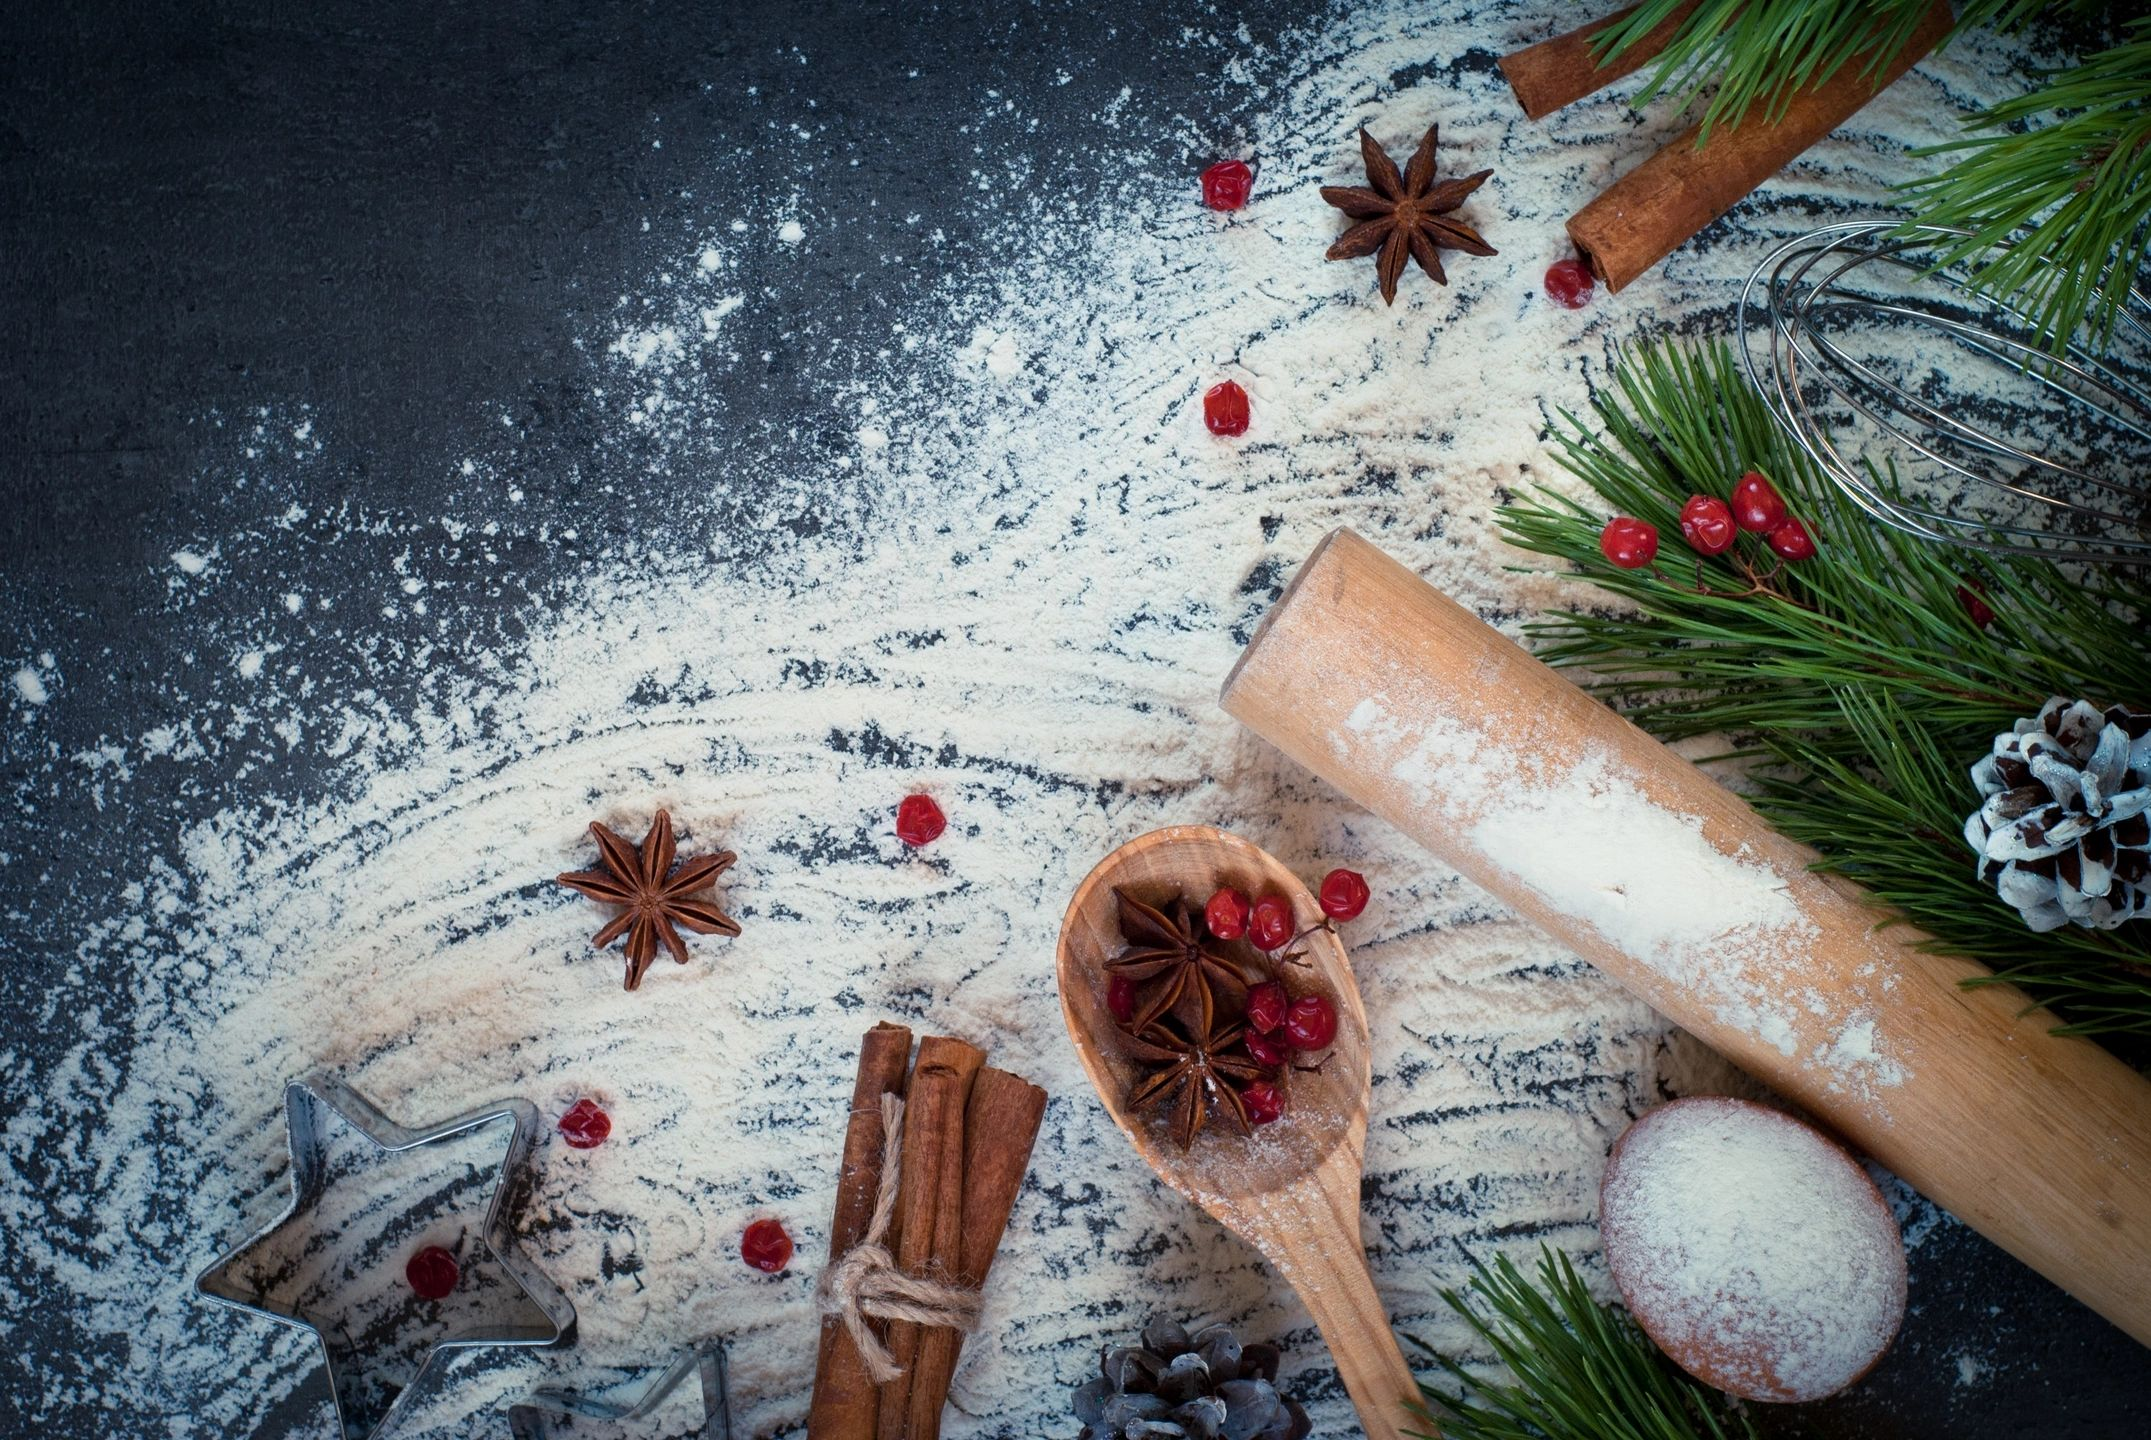 Holiday, dairy-free, egg nog, christmas, nutrition, health